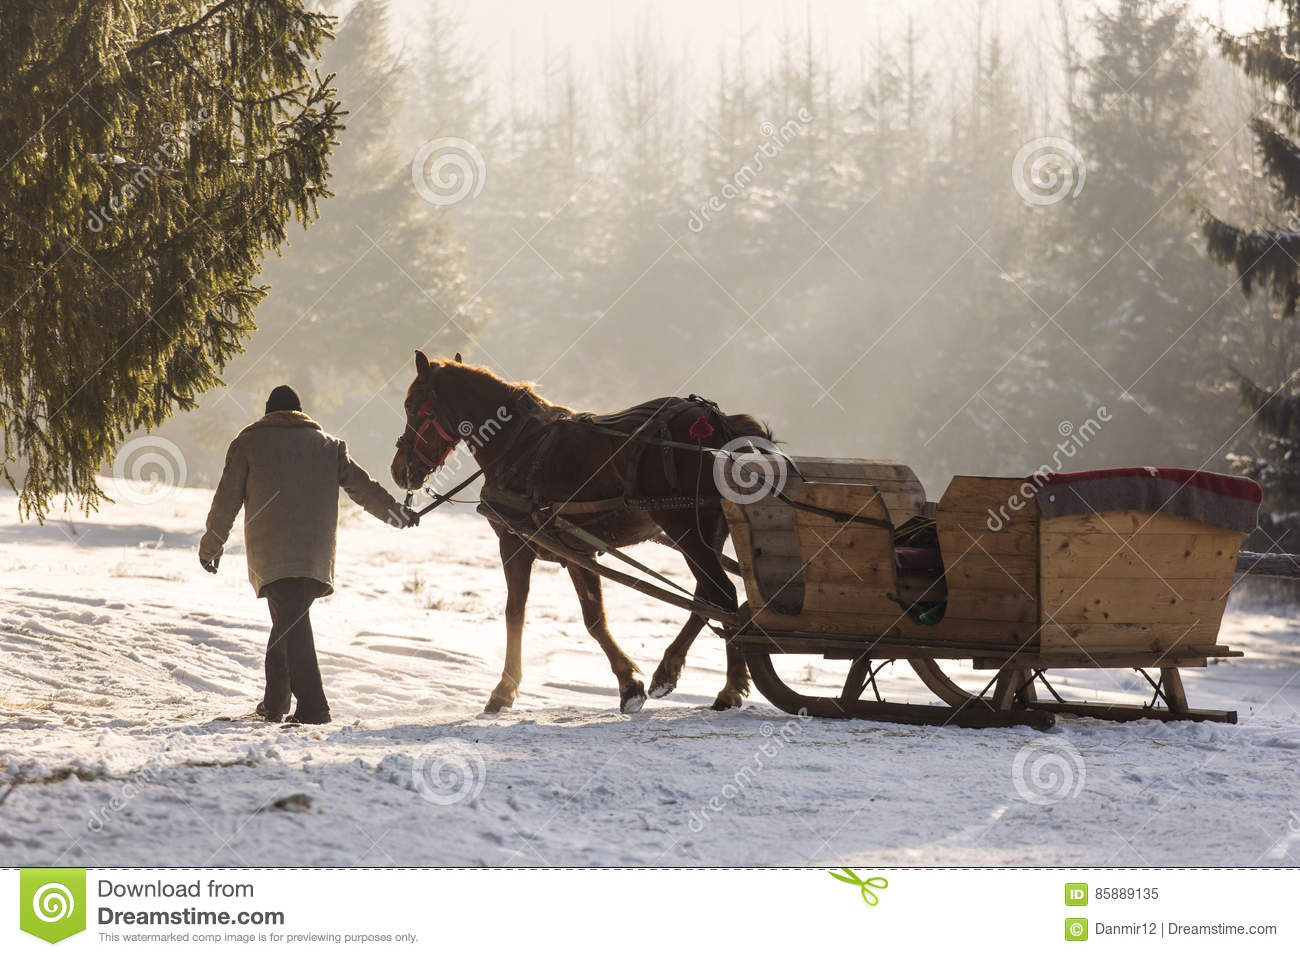 Beautyful sleigh in the winter trough the forest.